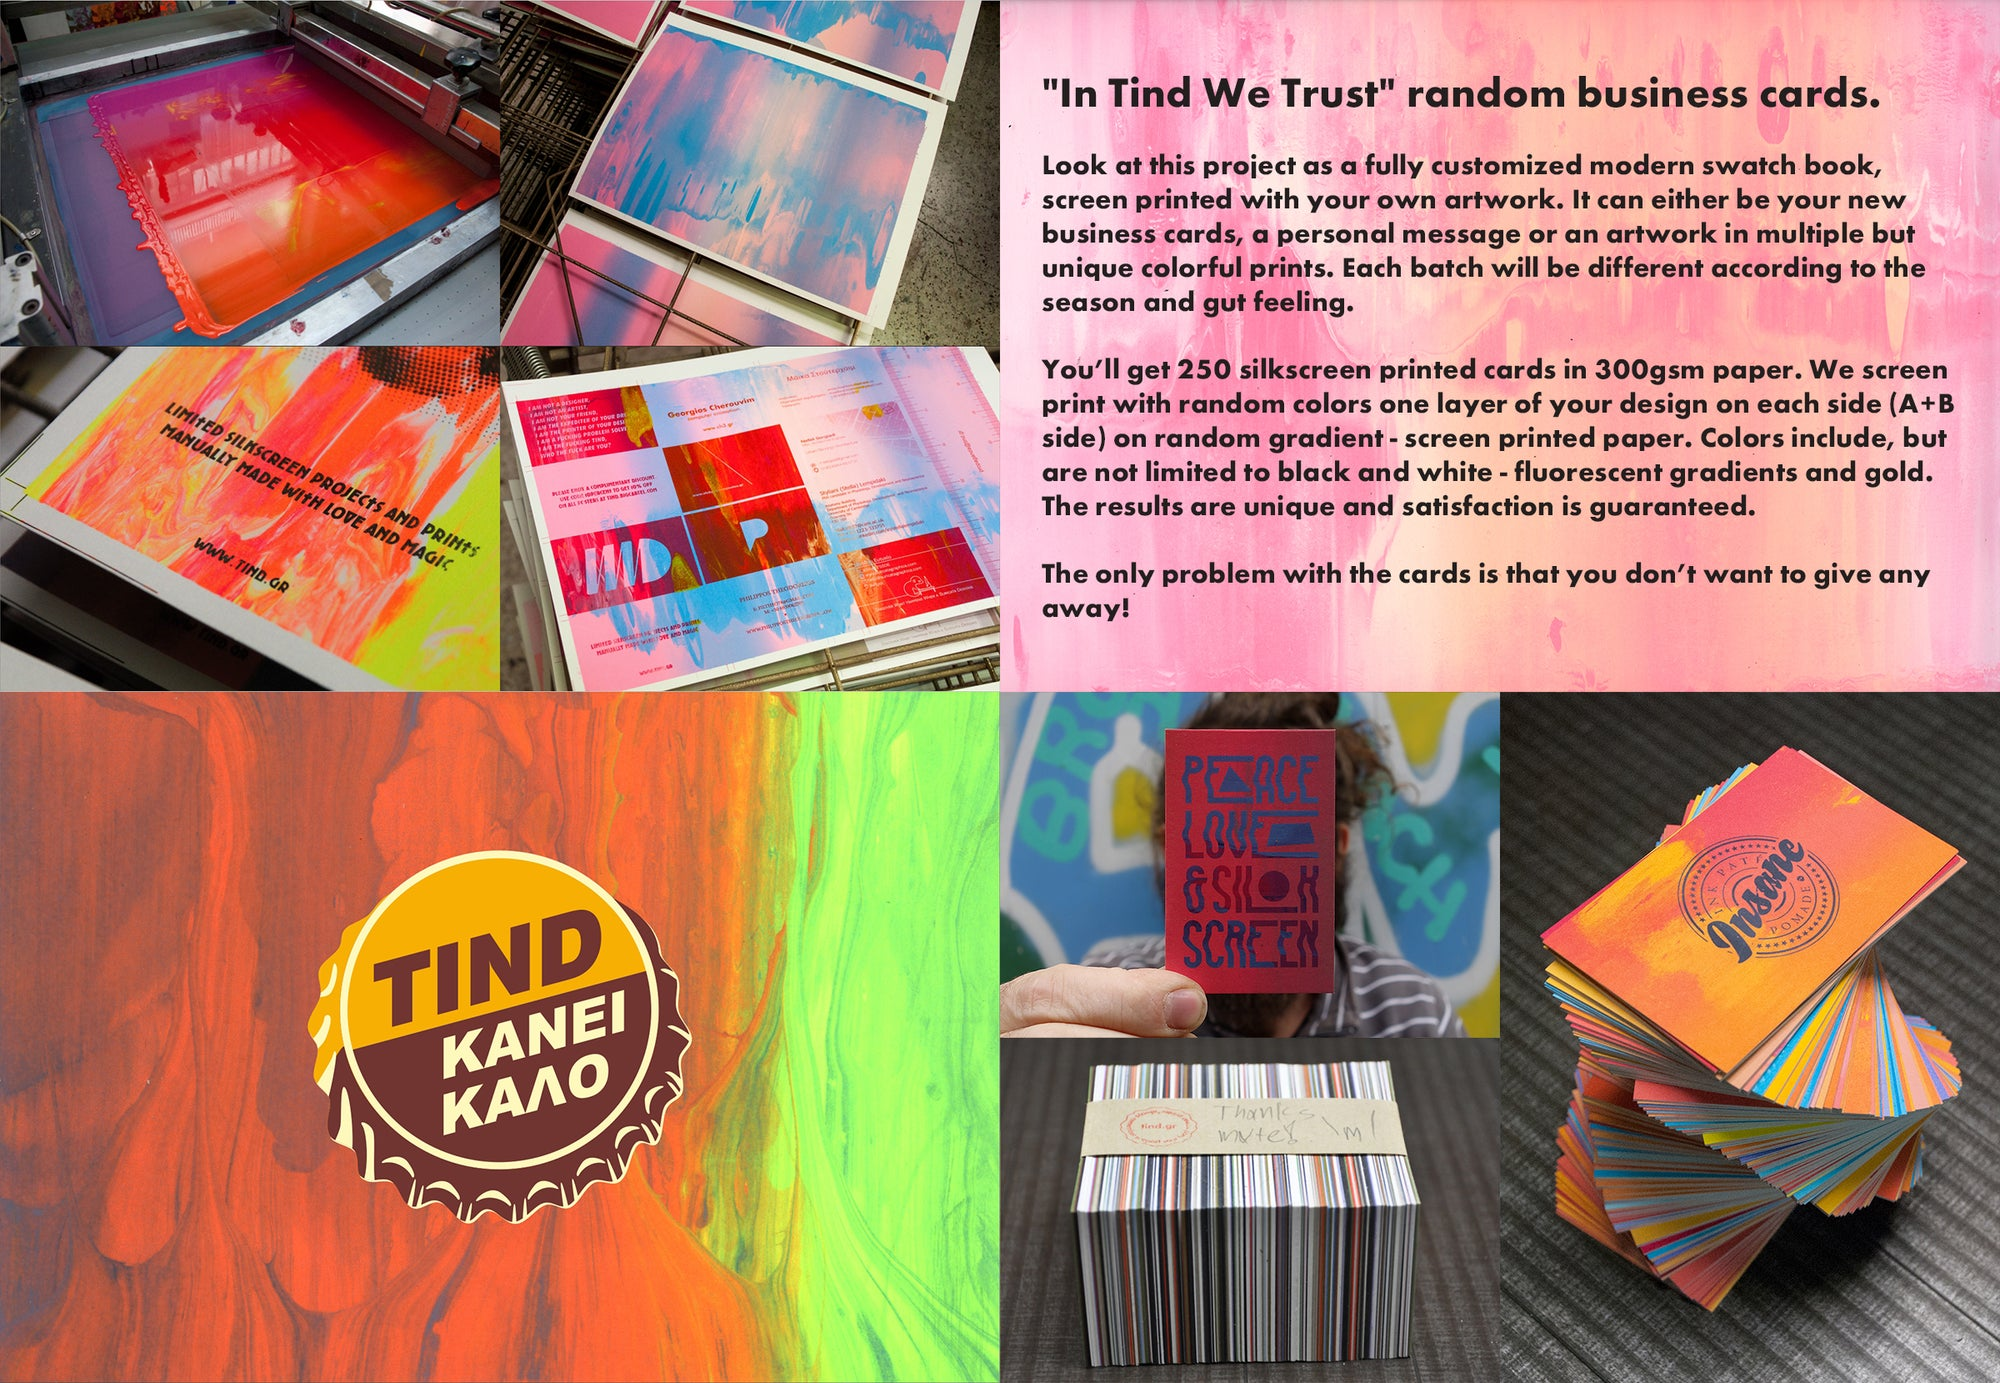 Image of In Tind we trust random business card prints.